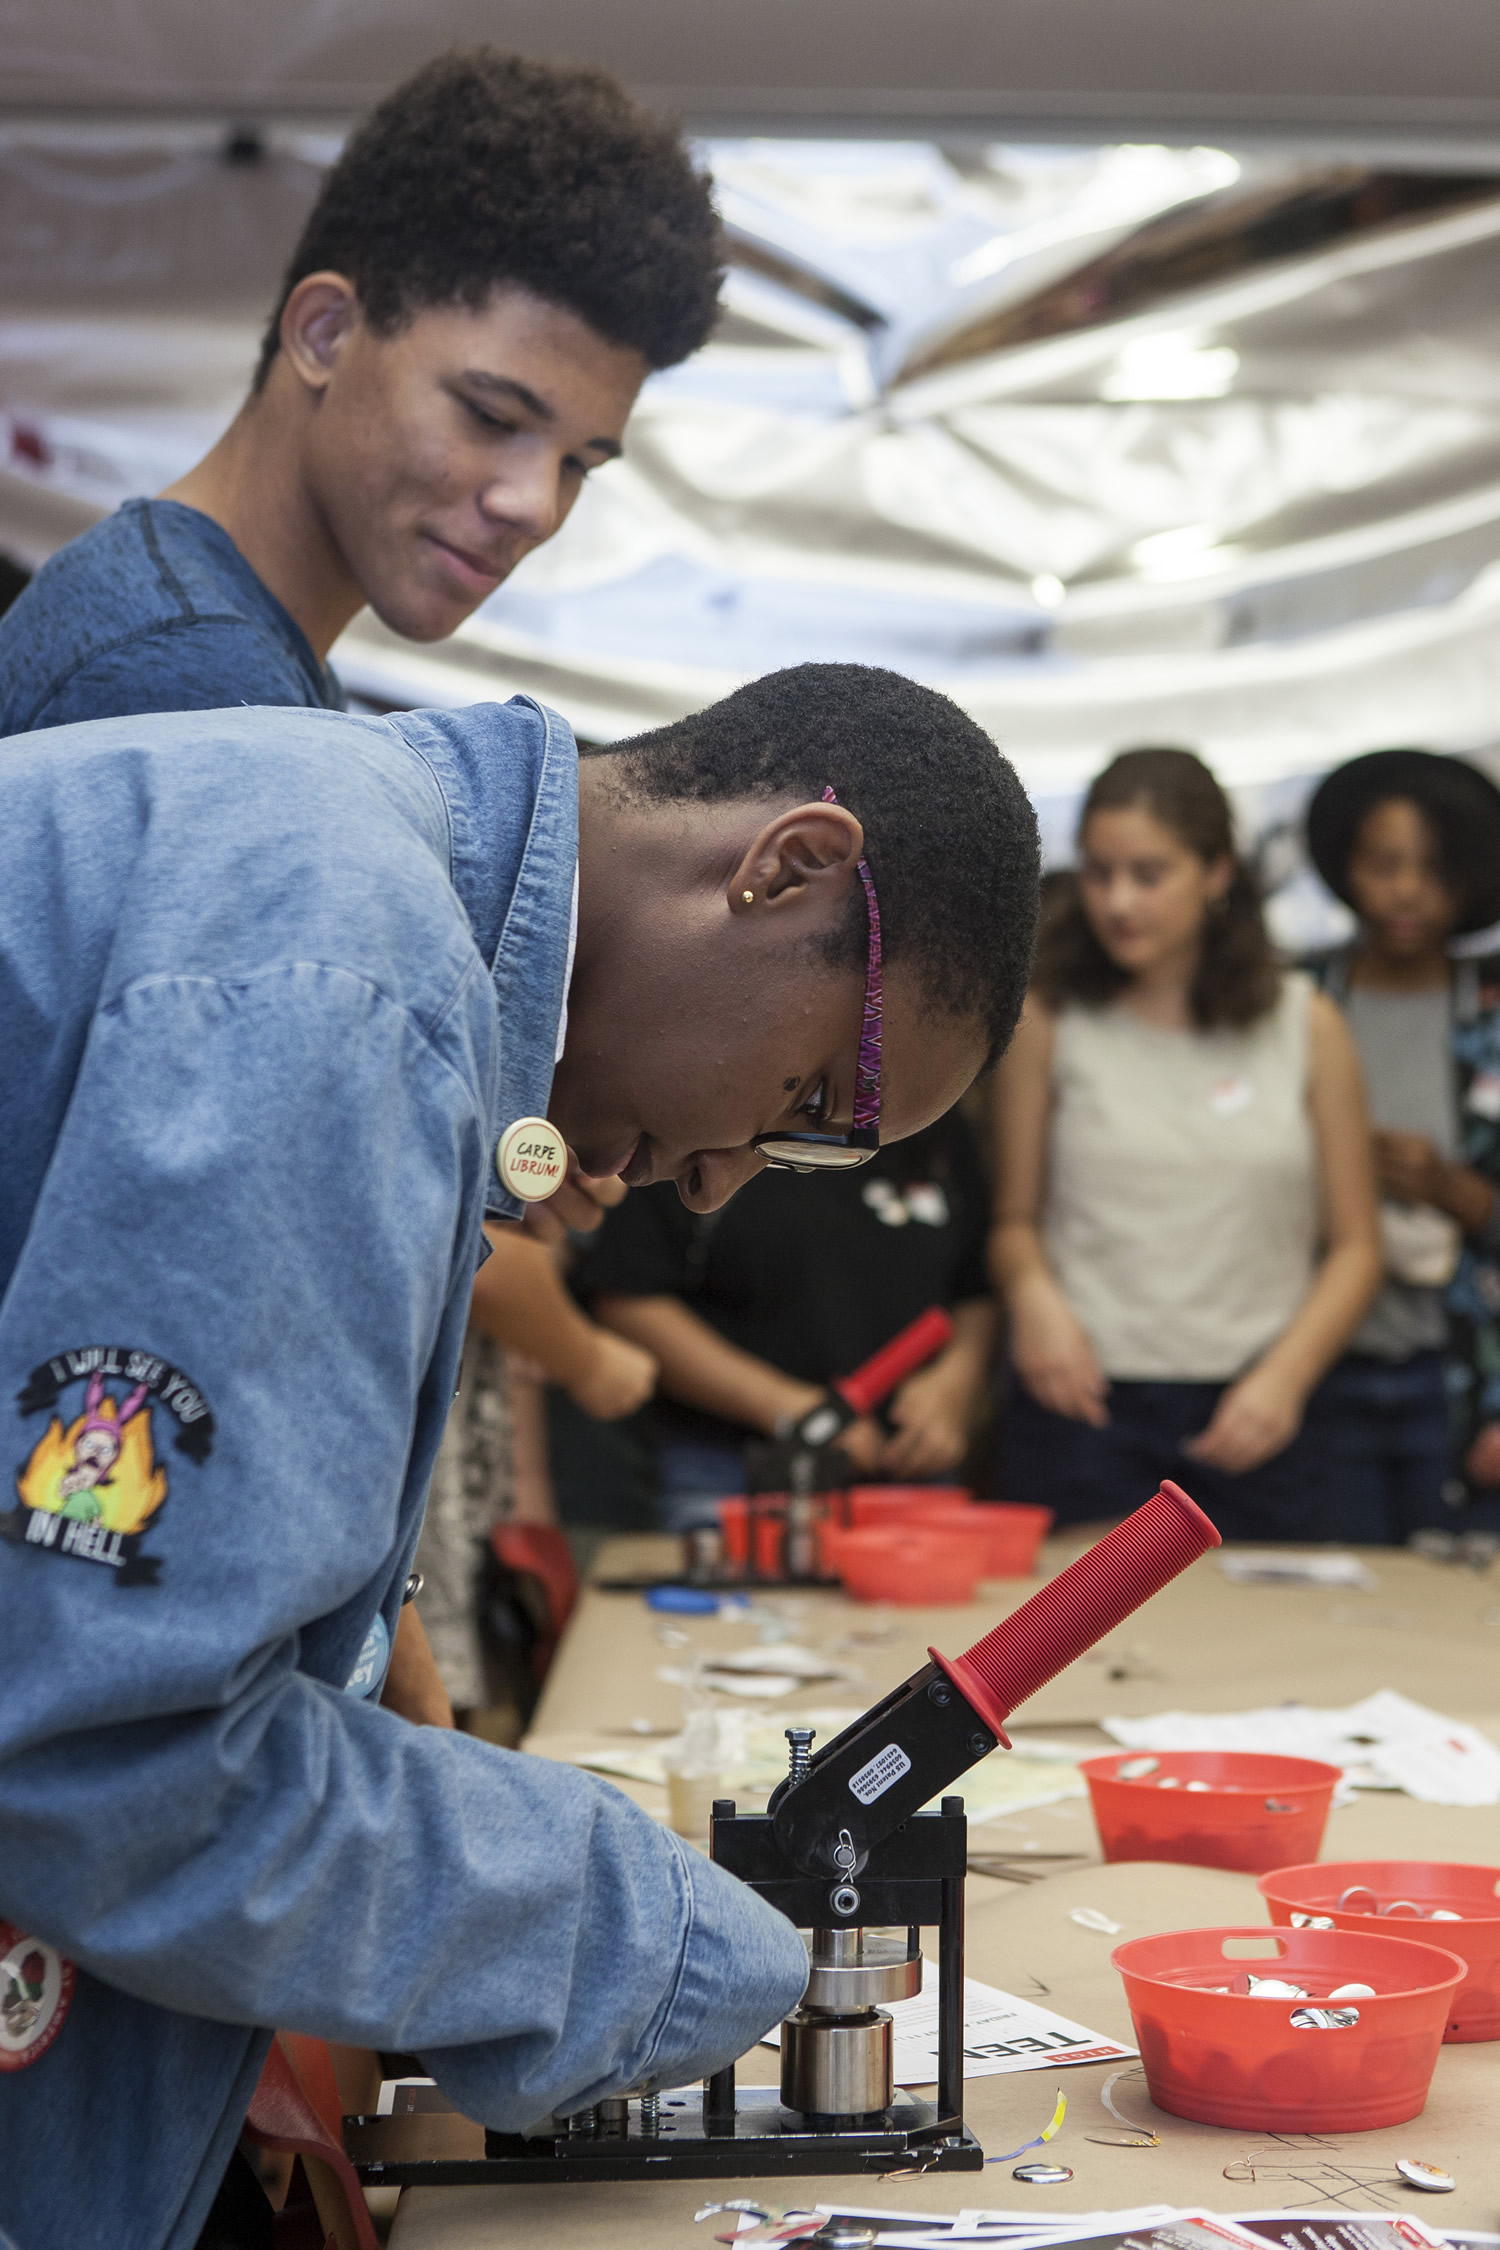 A teen uses a machine to make buttons while other teens look on.